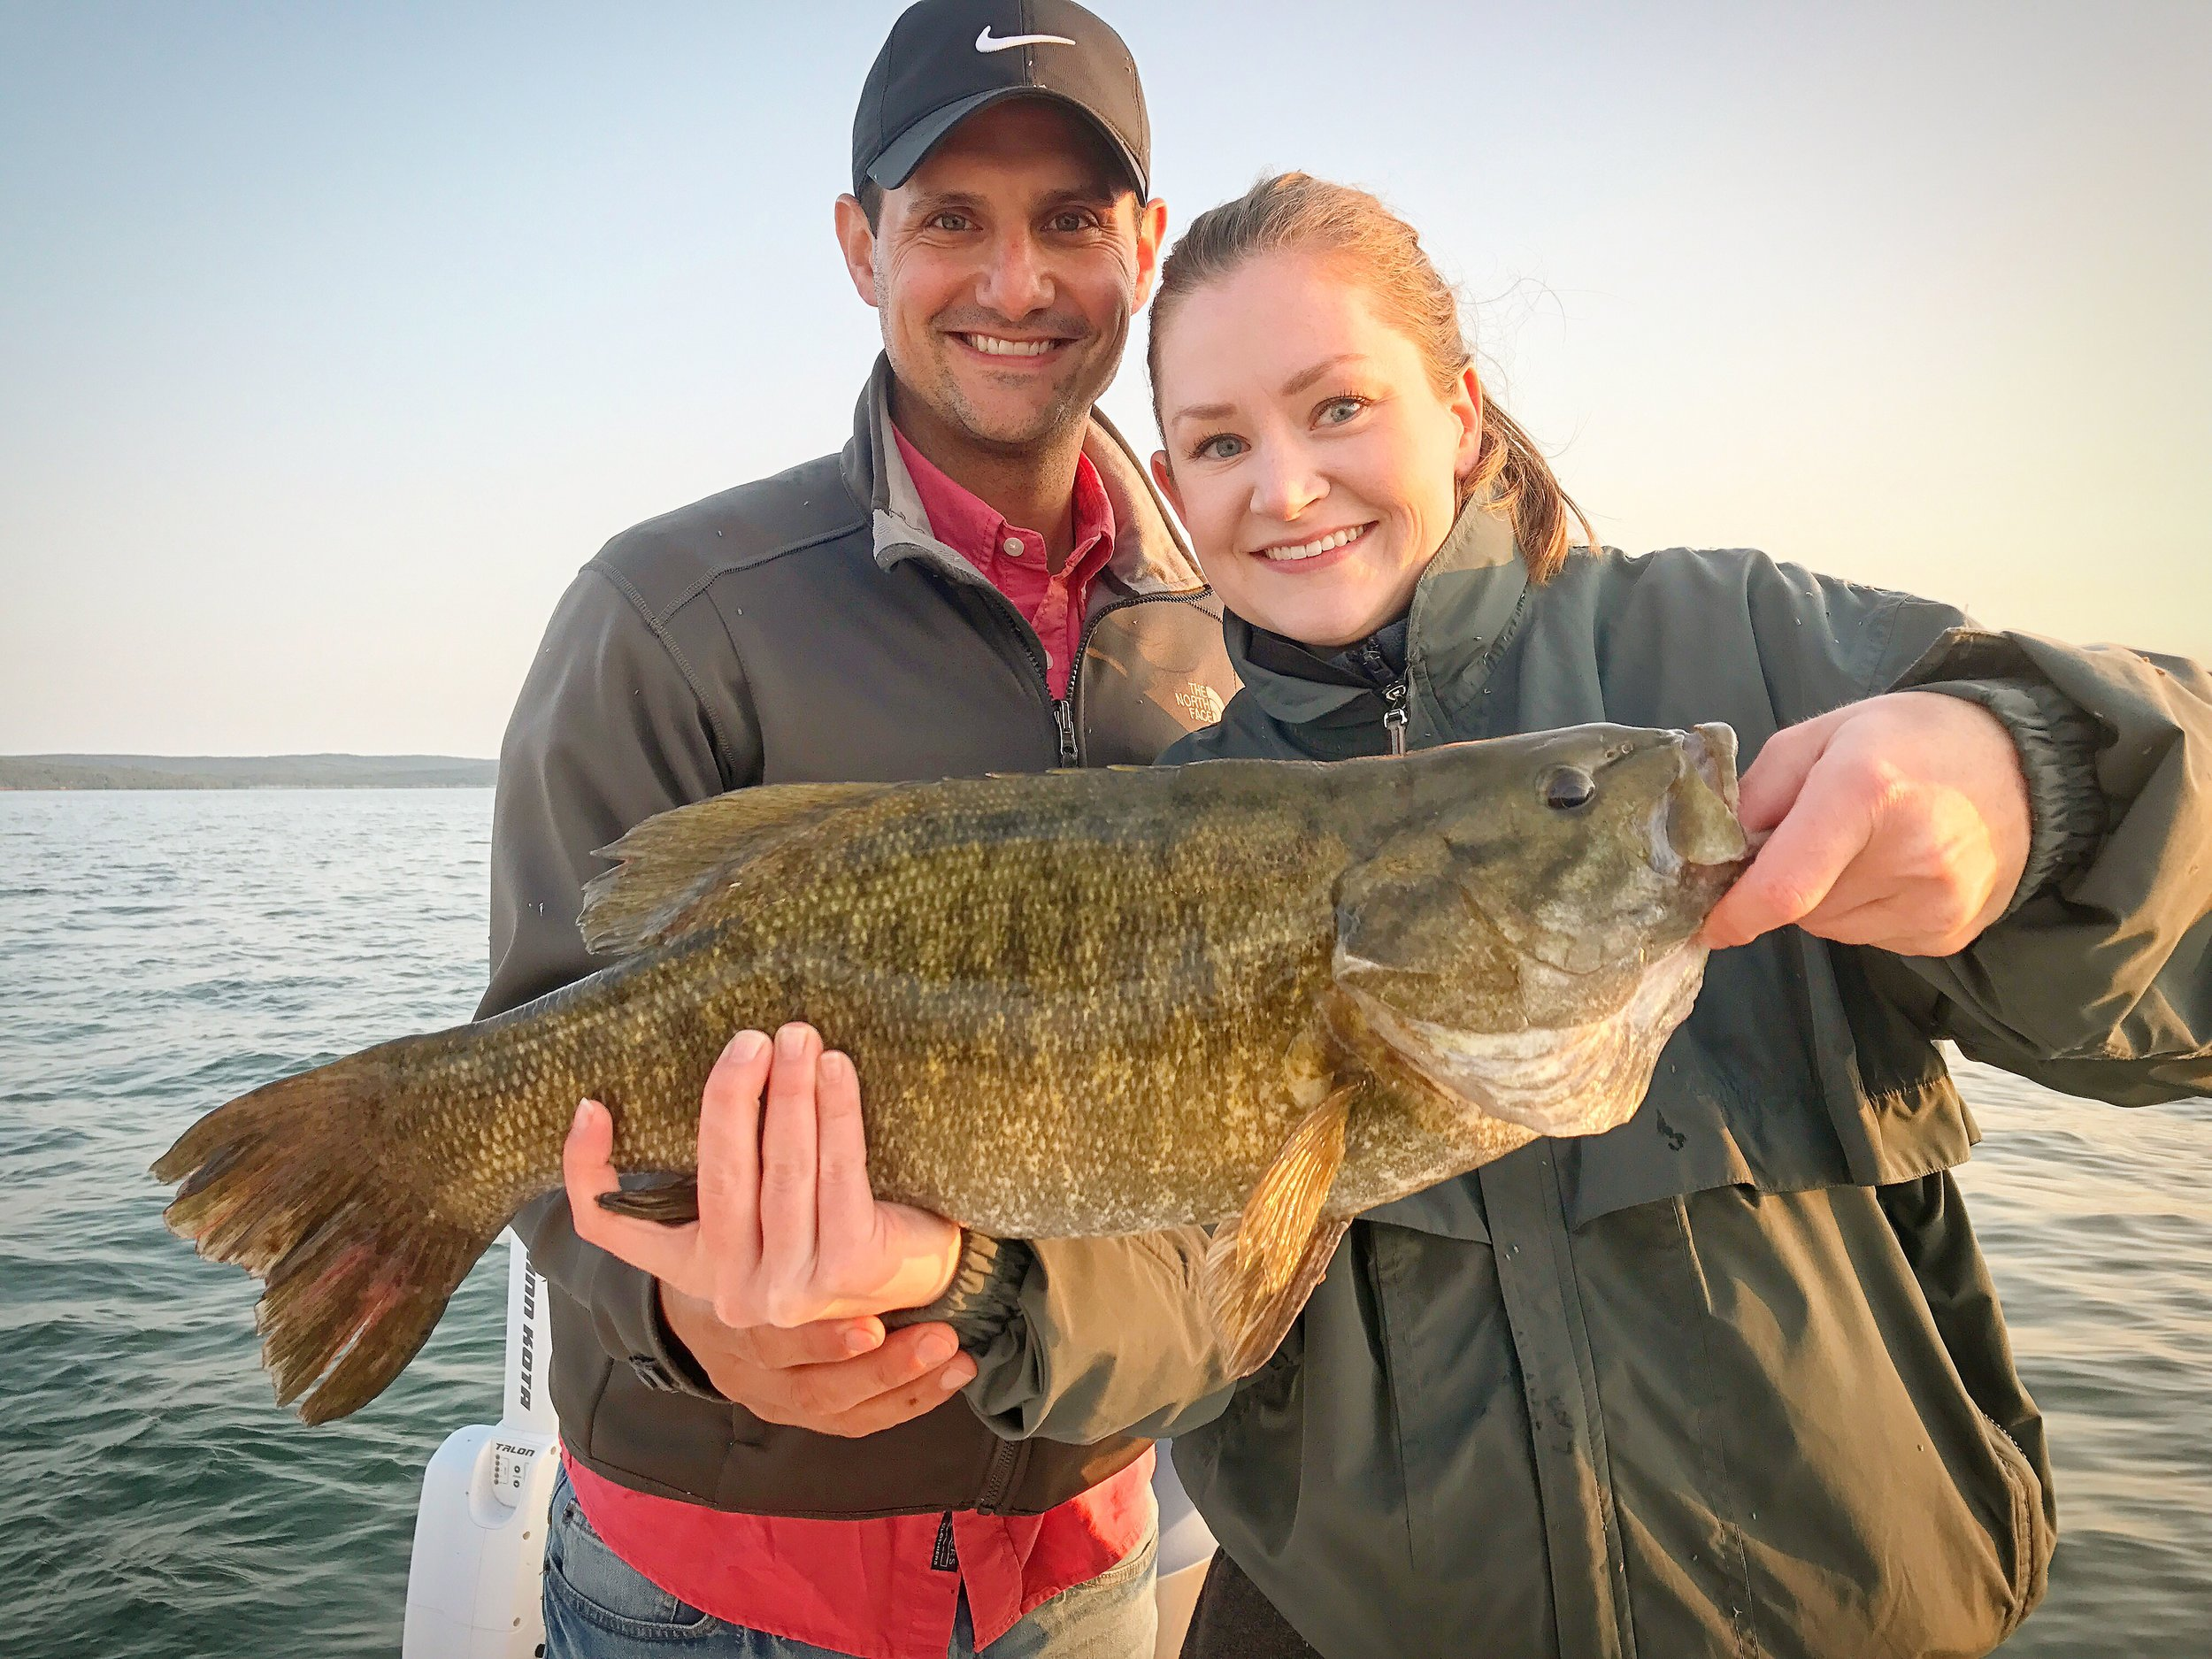 Leaving the marina at 5am in mid to late summer is good for two things: epic sunrises and BIG smallmouth.  This one topped out at 22 inches and weighed in at 6.6 pounds.